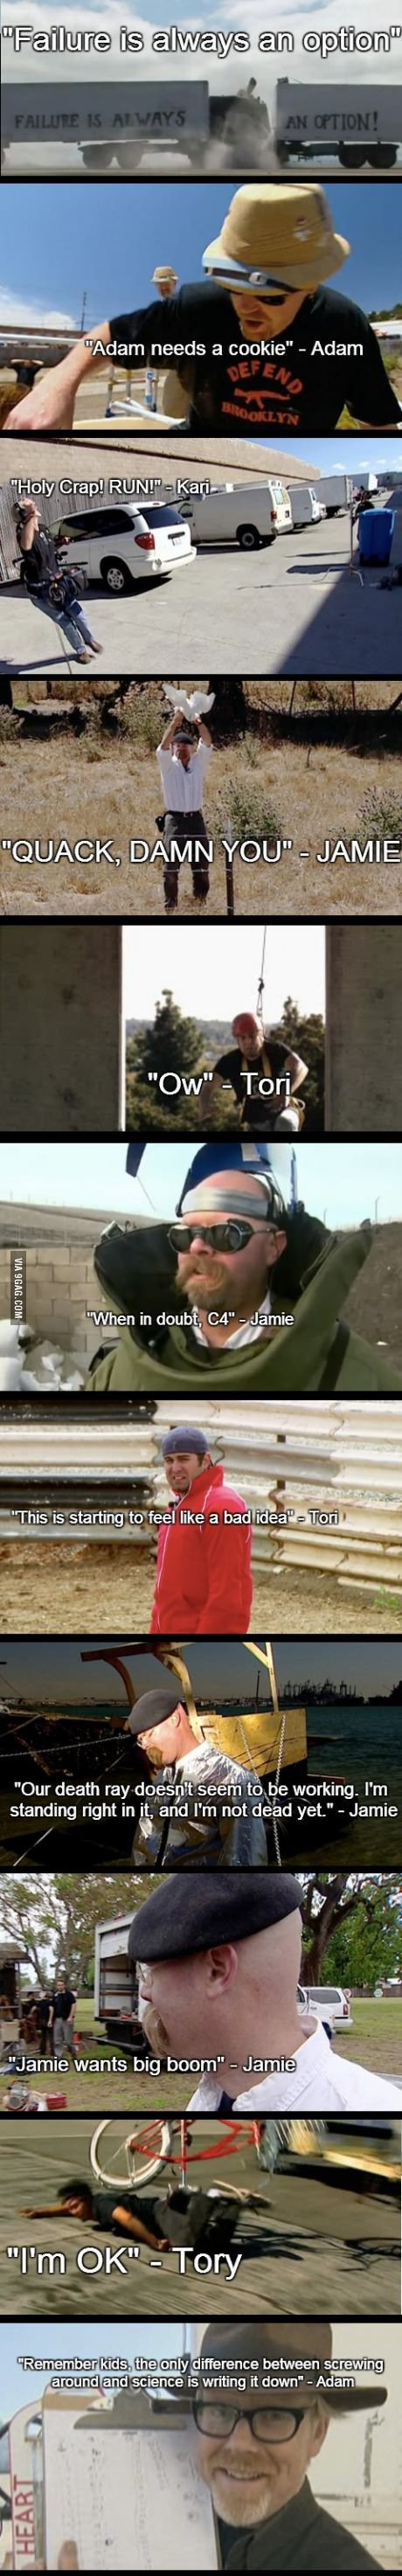 11 quotes which show Mythbusters doing science...stuff love the last one XD